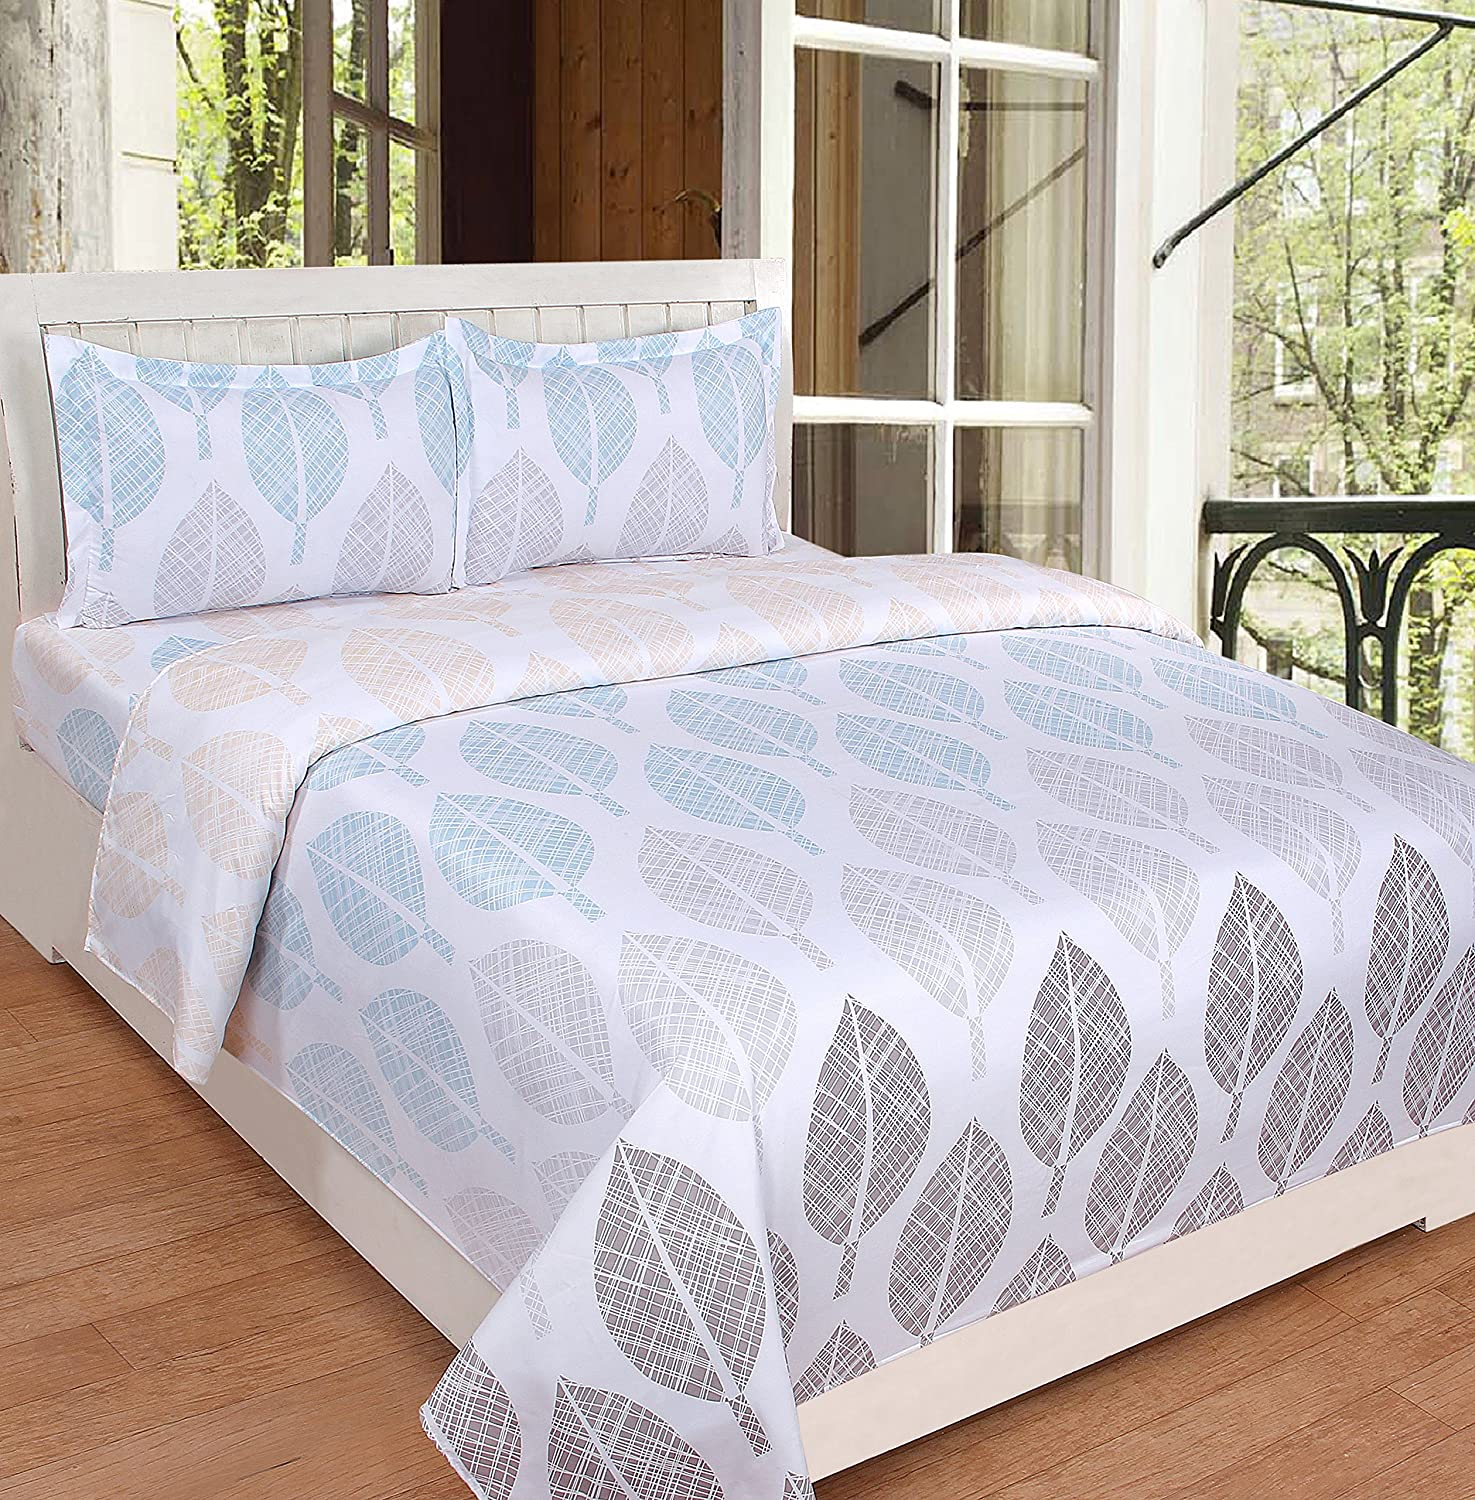 e5092d31adff Grapes Flow Cotton Feel Bed Sheet Set for Double Bed with 2 Pillow Covers  by Kind Bliss - Designer Printed